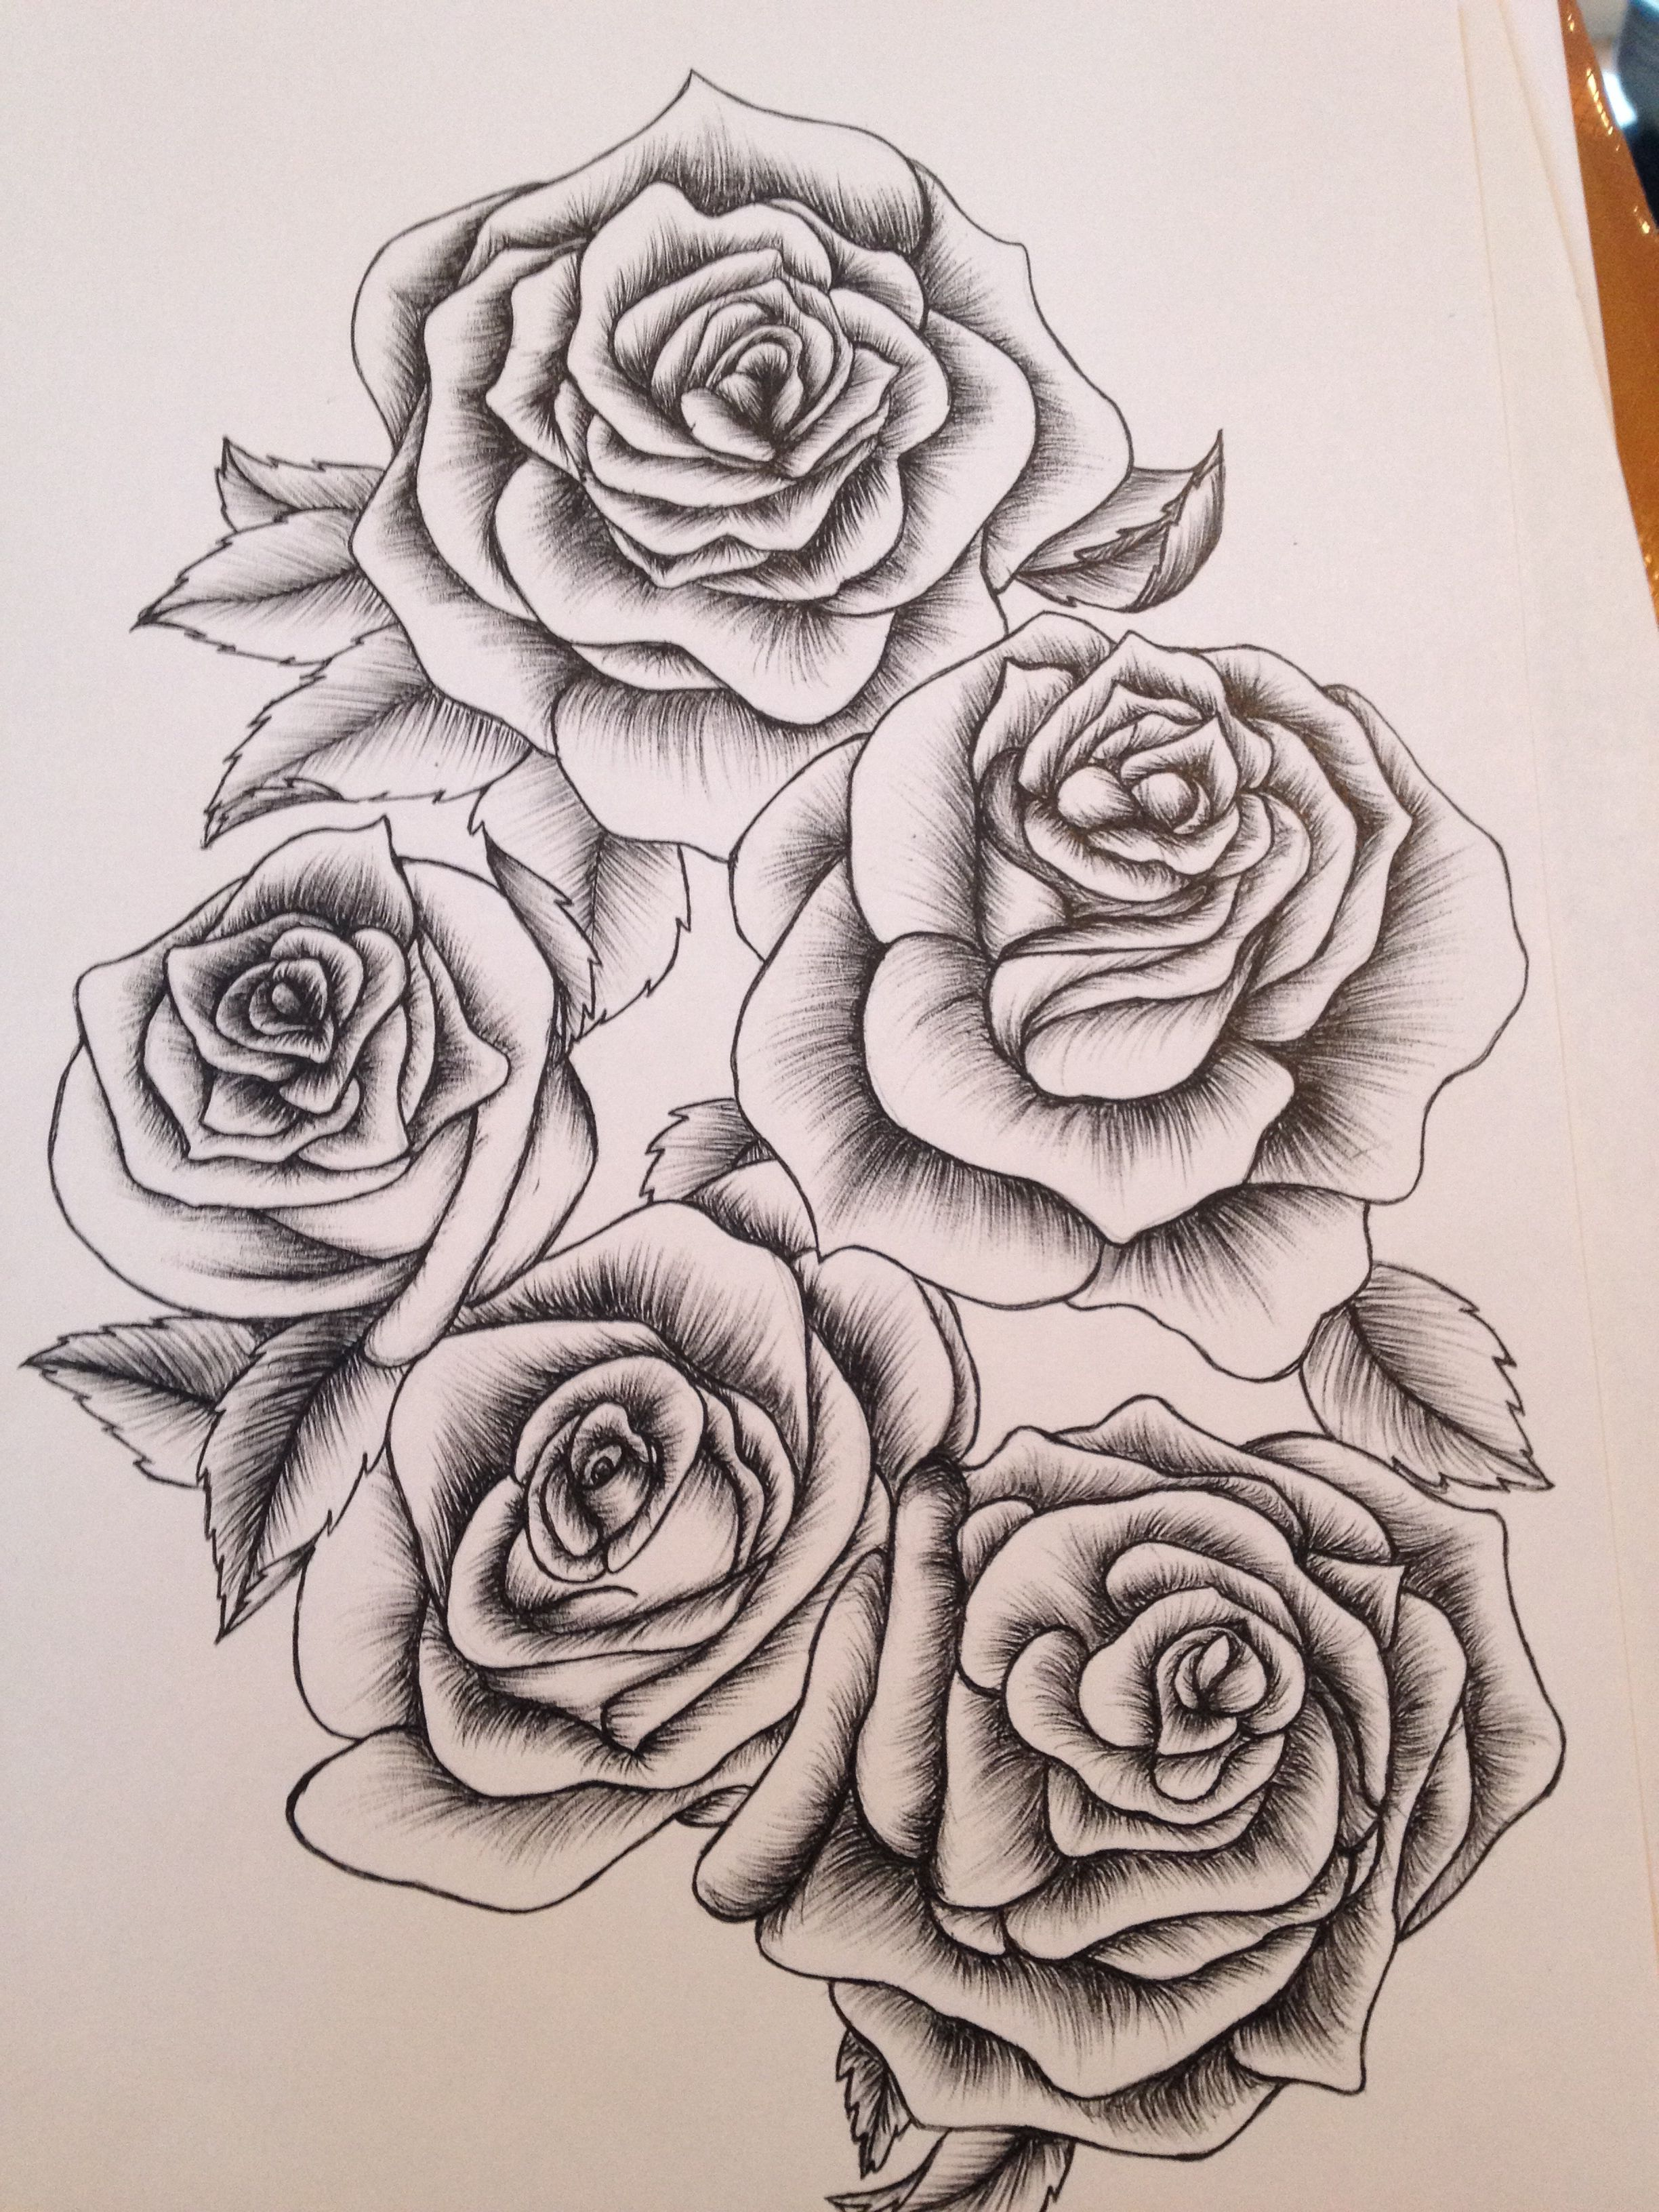 A sleeve of roses Rose outline tattoo, Rose tattoos, Tattoos